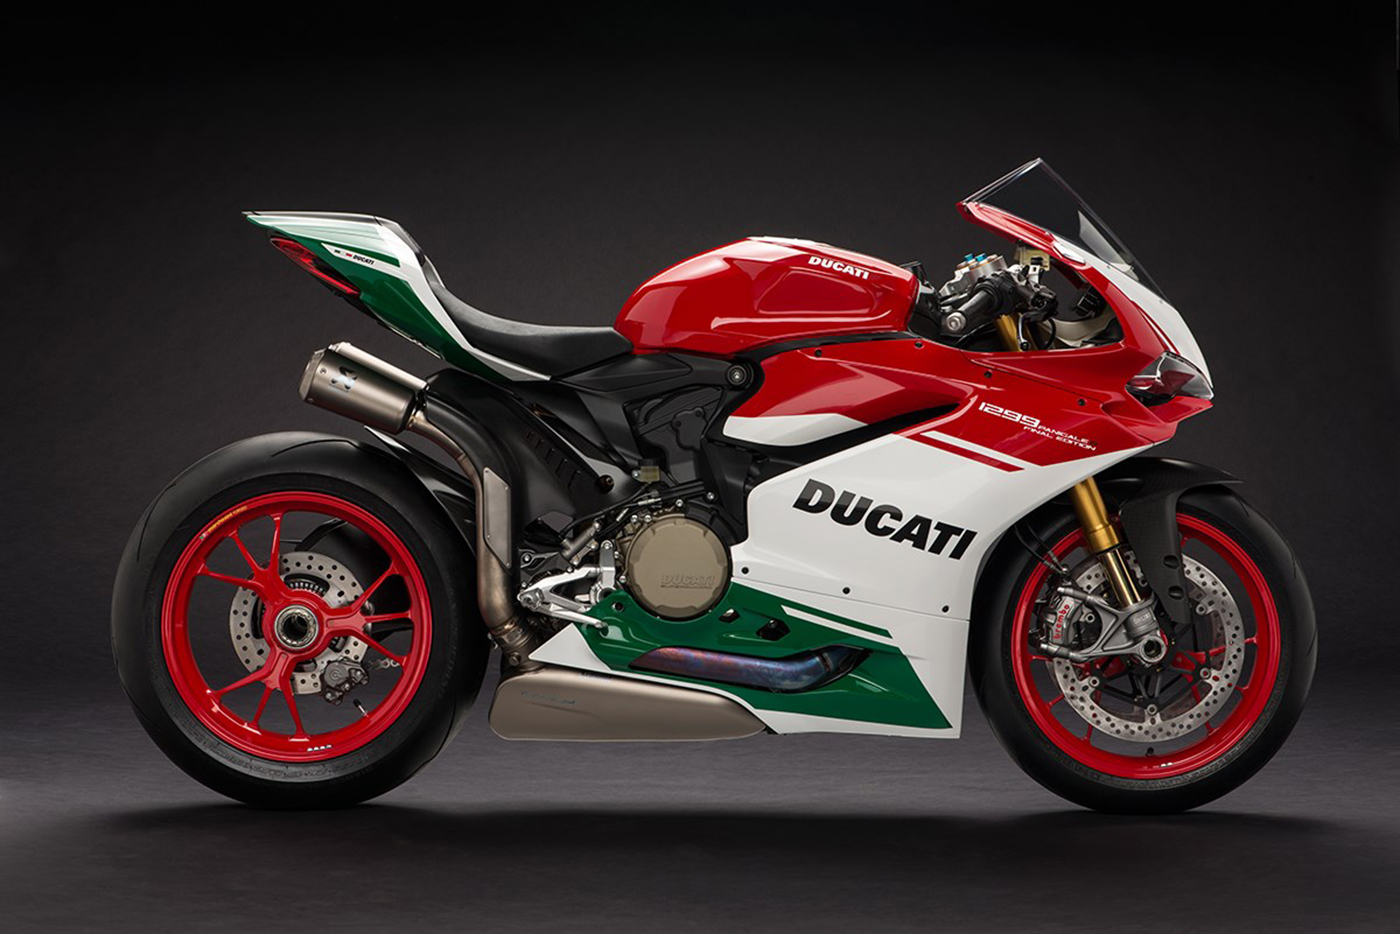 ducati-1299-panigale-r-final-edition-12.jpg